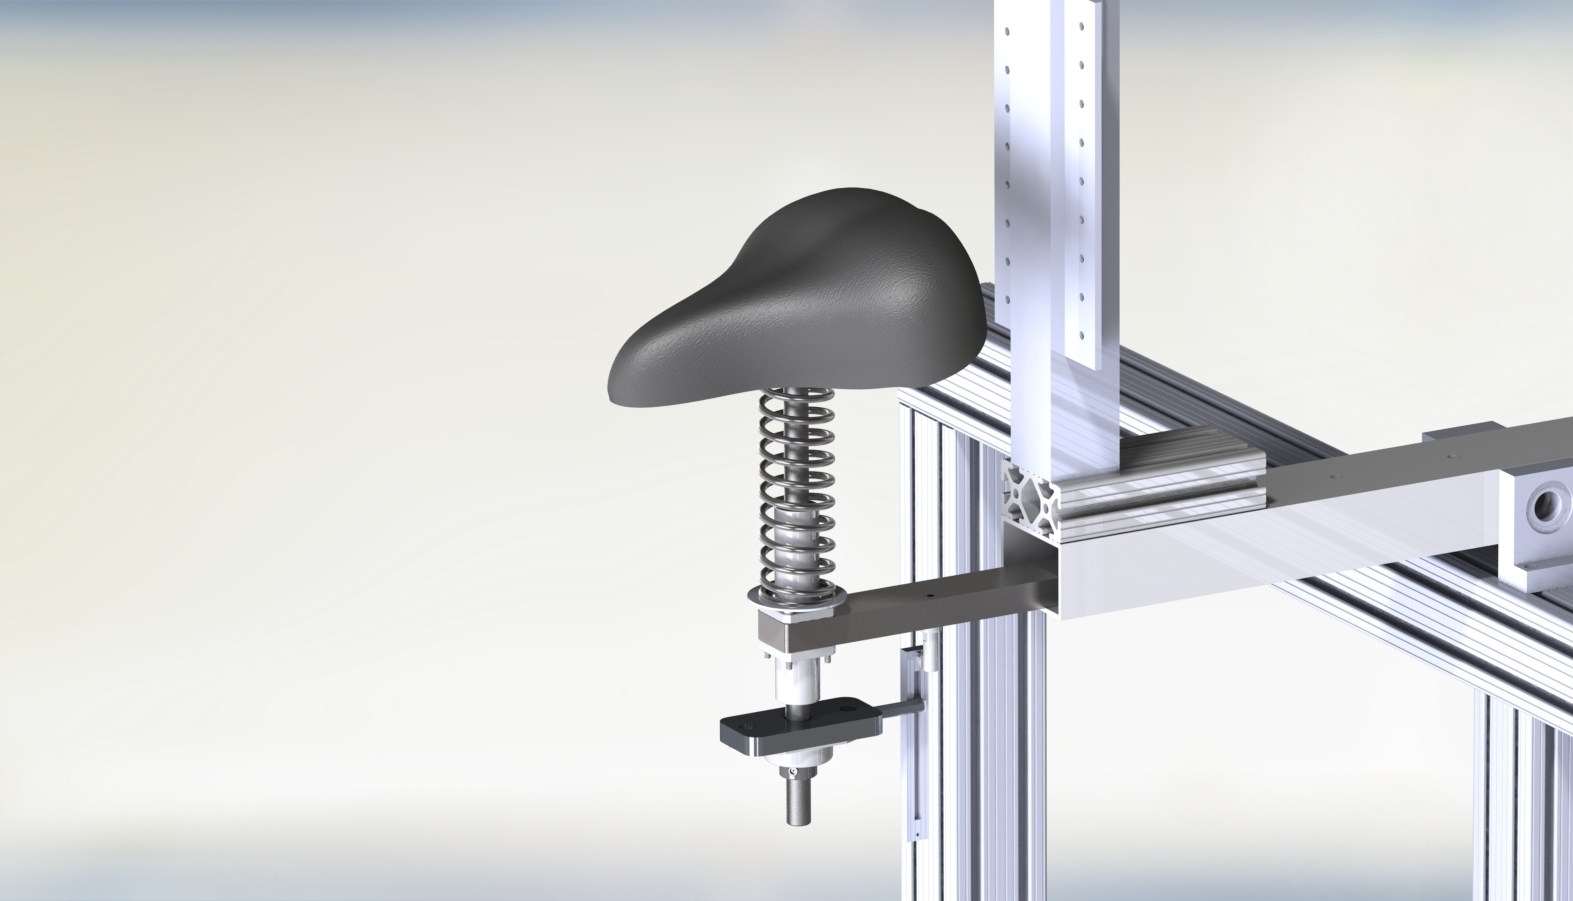 The final design of the body weight support system used a bearing and a linear potentiometer to accurately provide body weight support data.